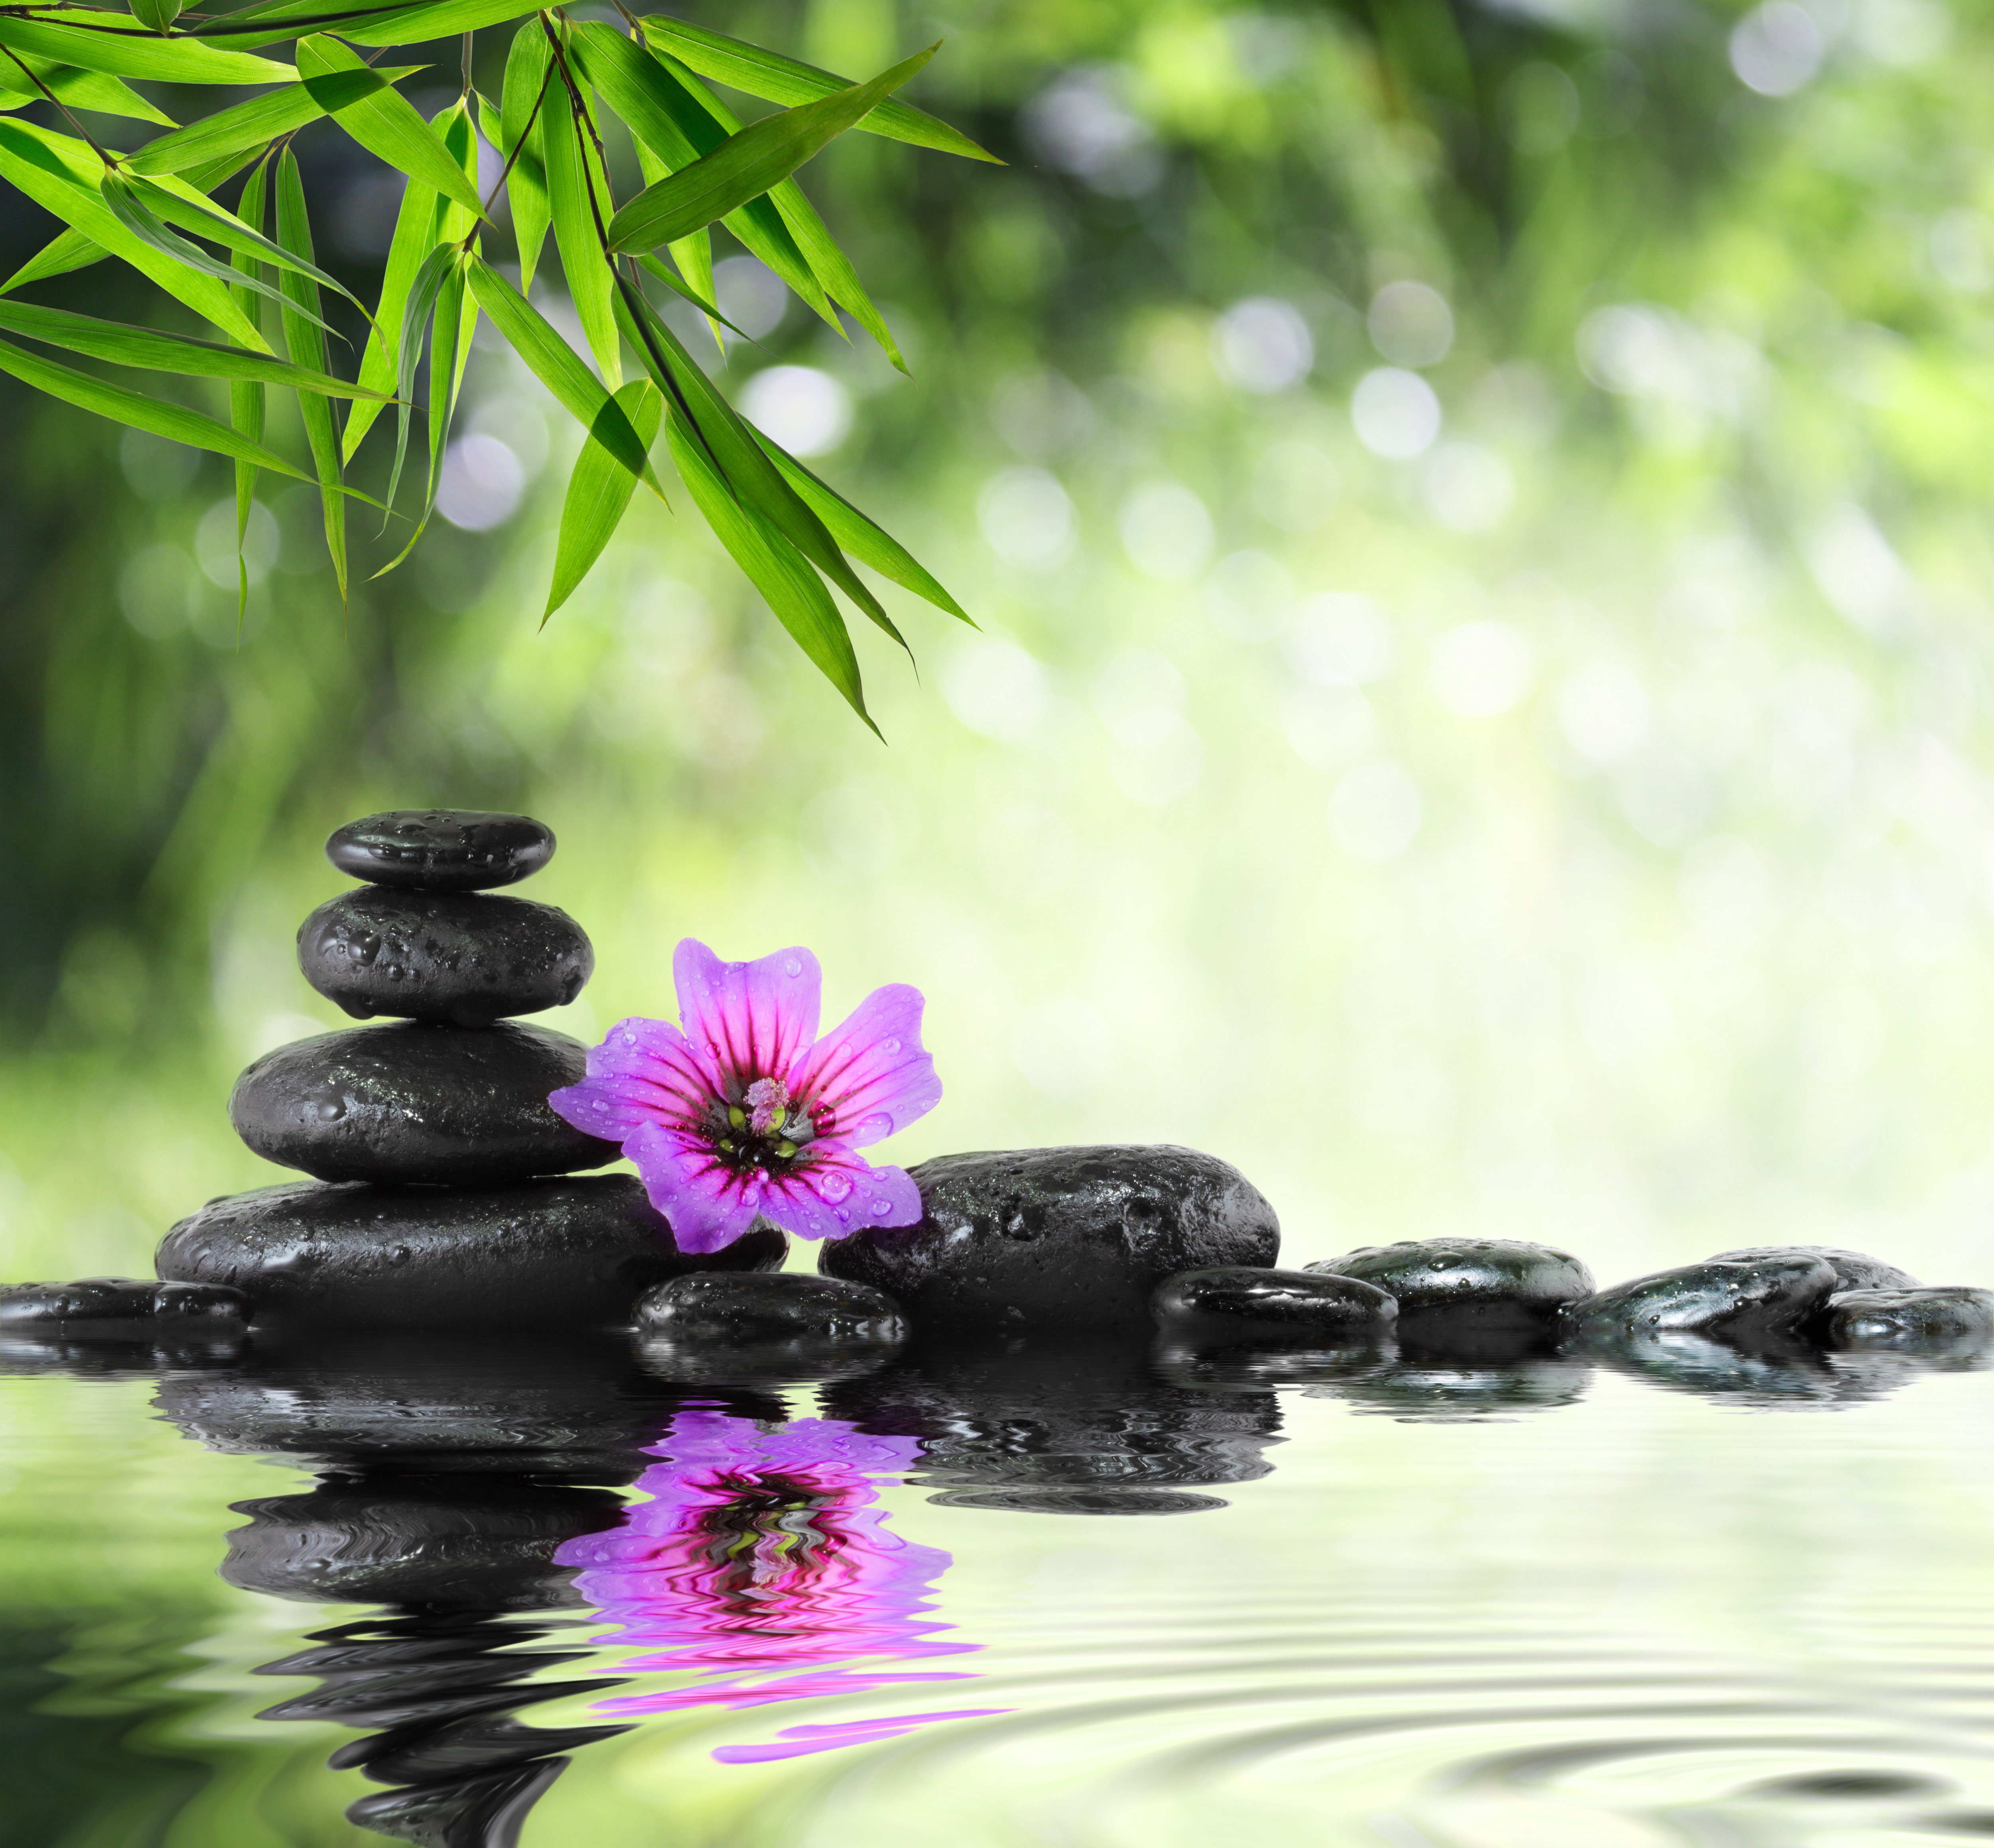 Gallery Backgrounds Green Spa Background